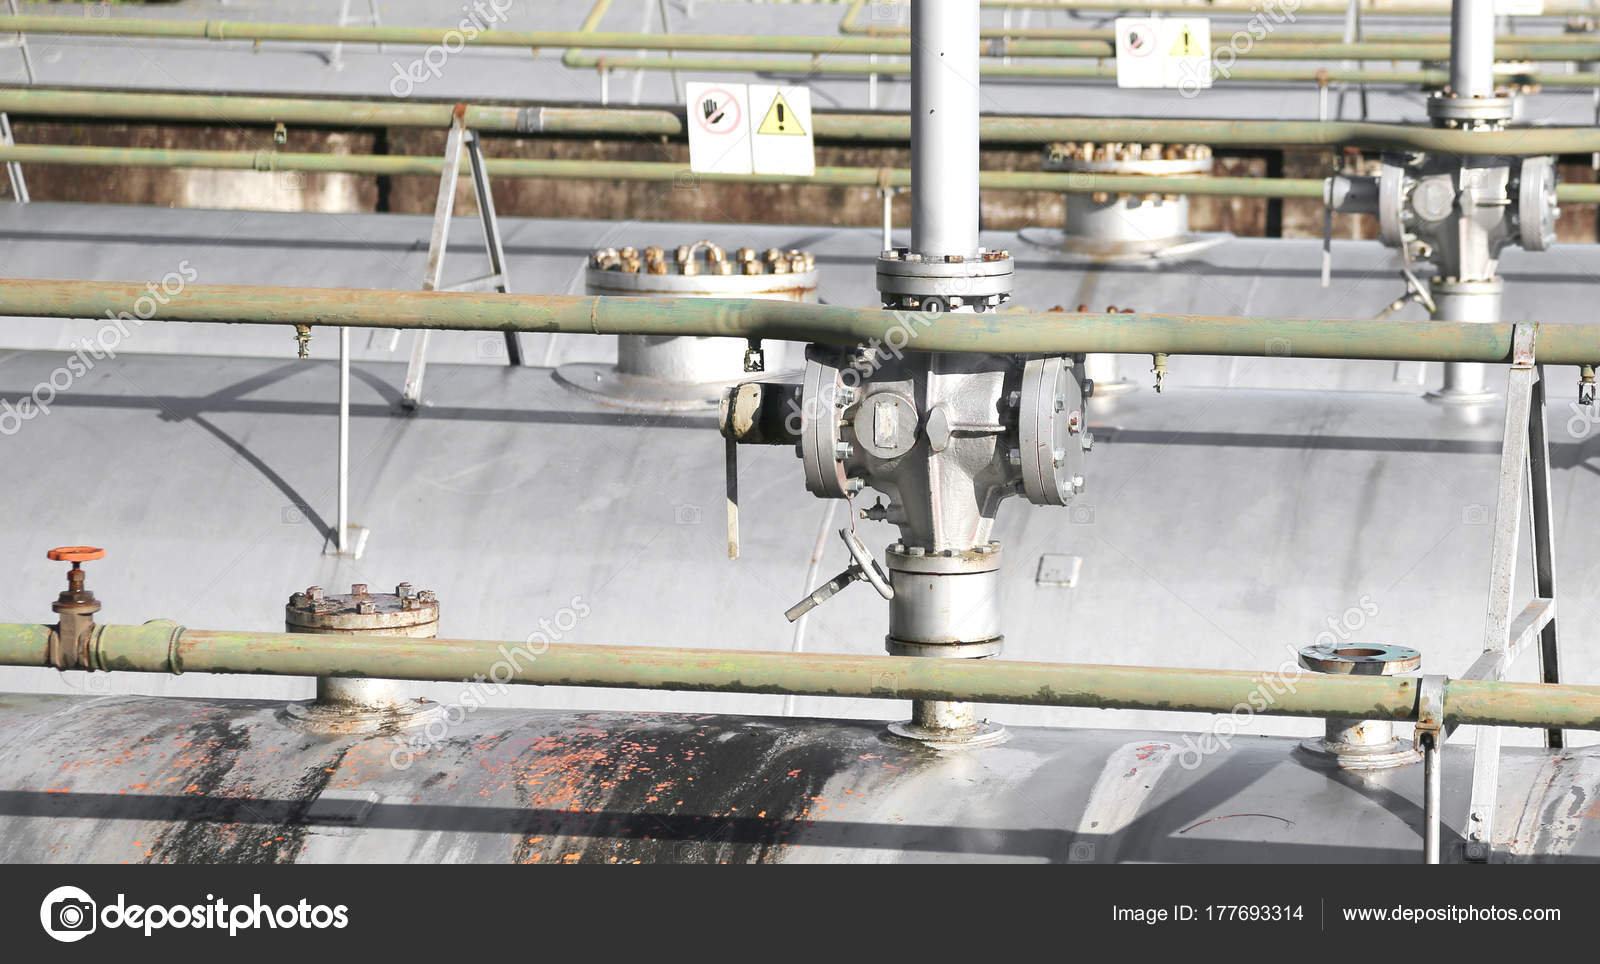 Safety valve above the large storage tank for gas inside and